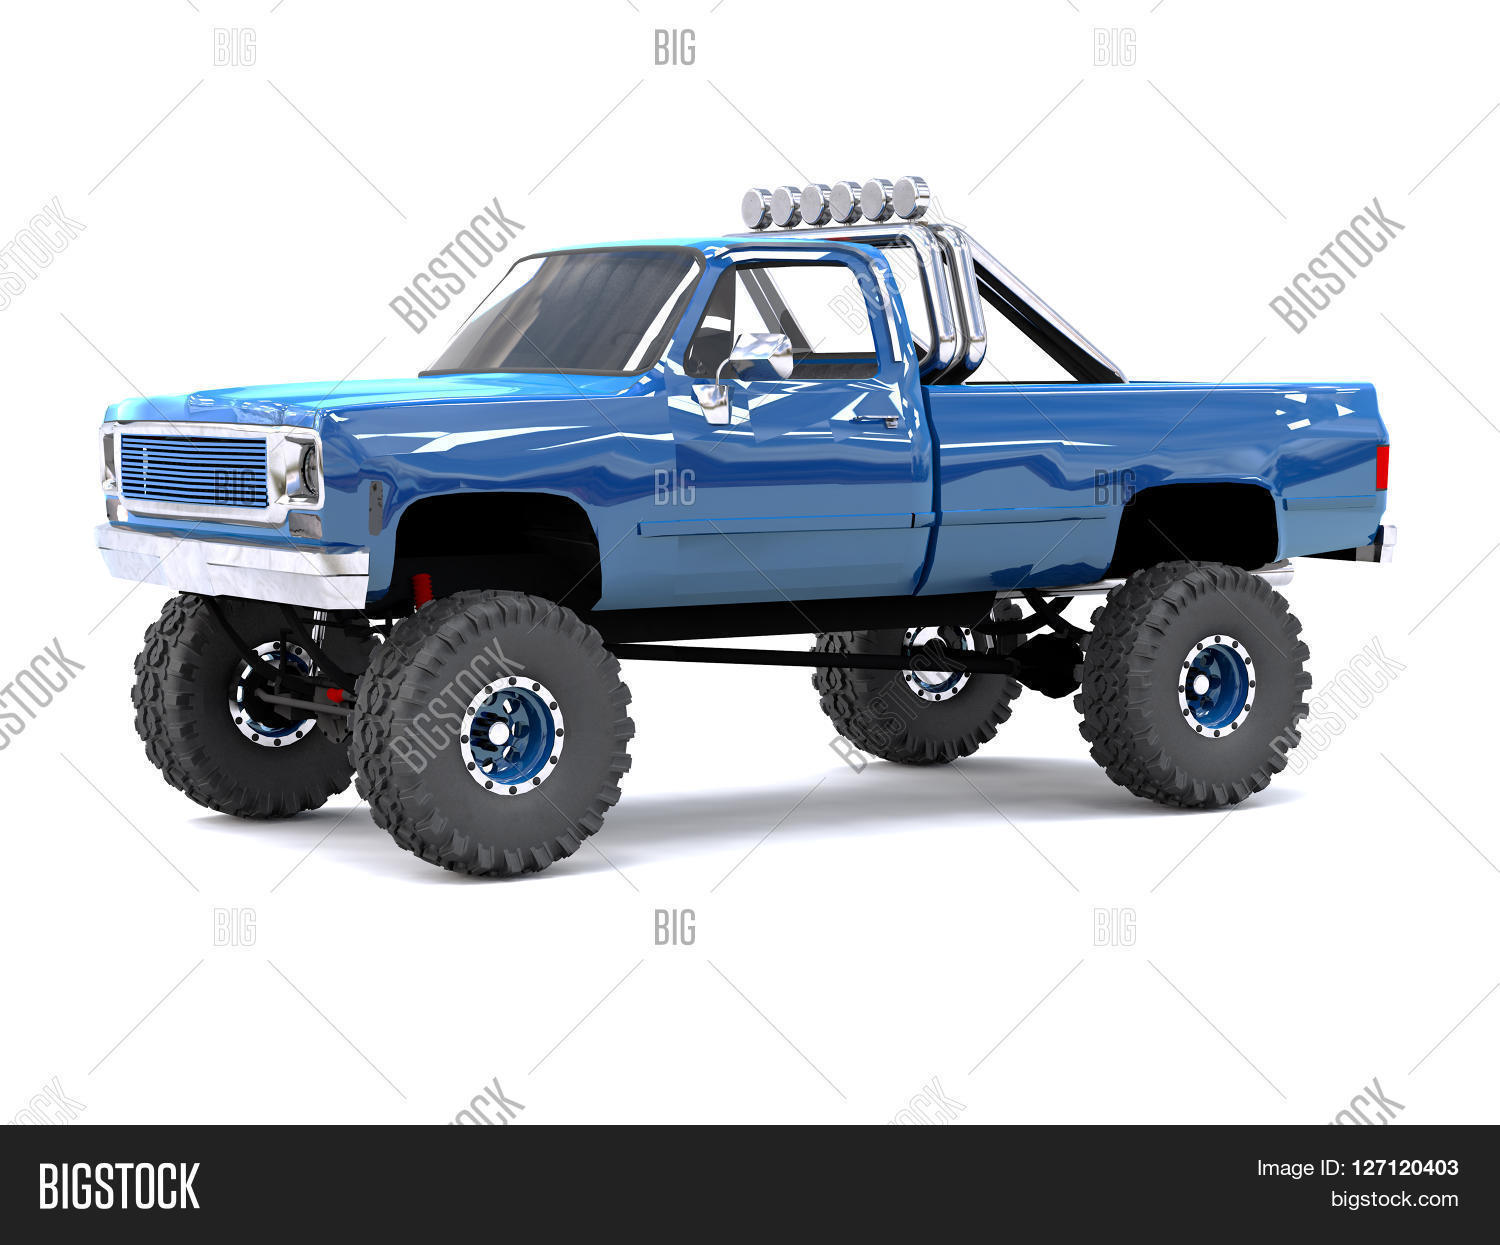 Large blue pickup truck off road image photo bigstock a large blue pickup truck off road full off road training highly publicscrutiny Images